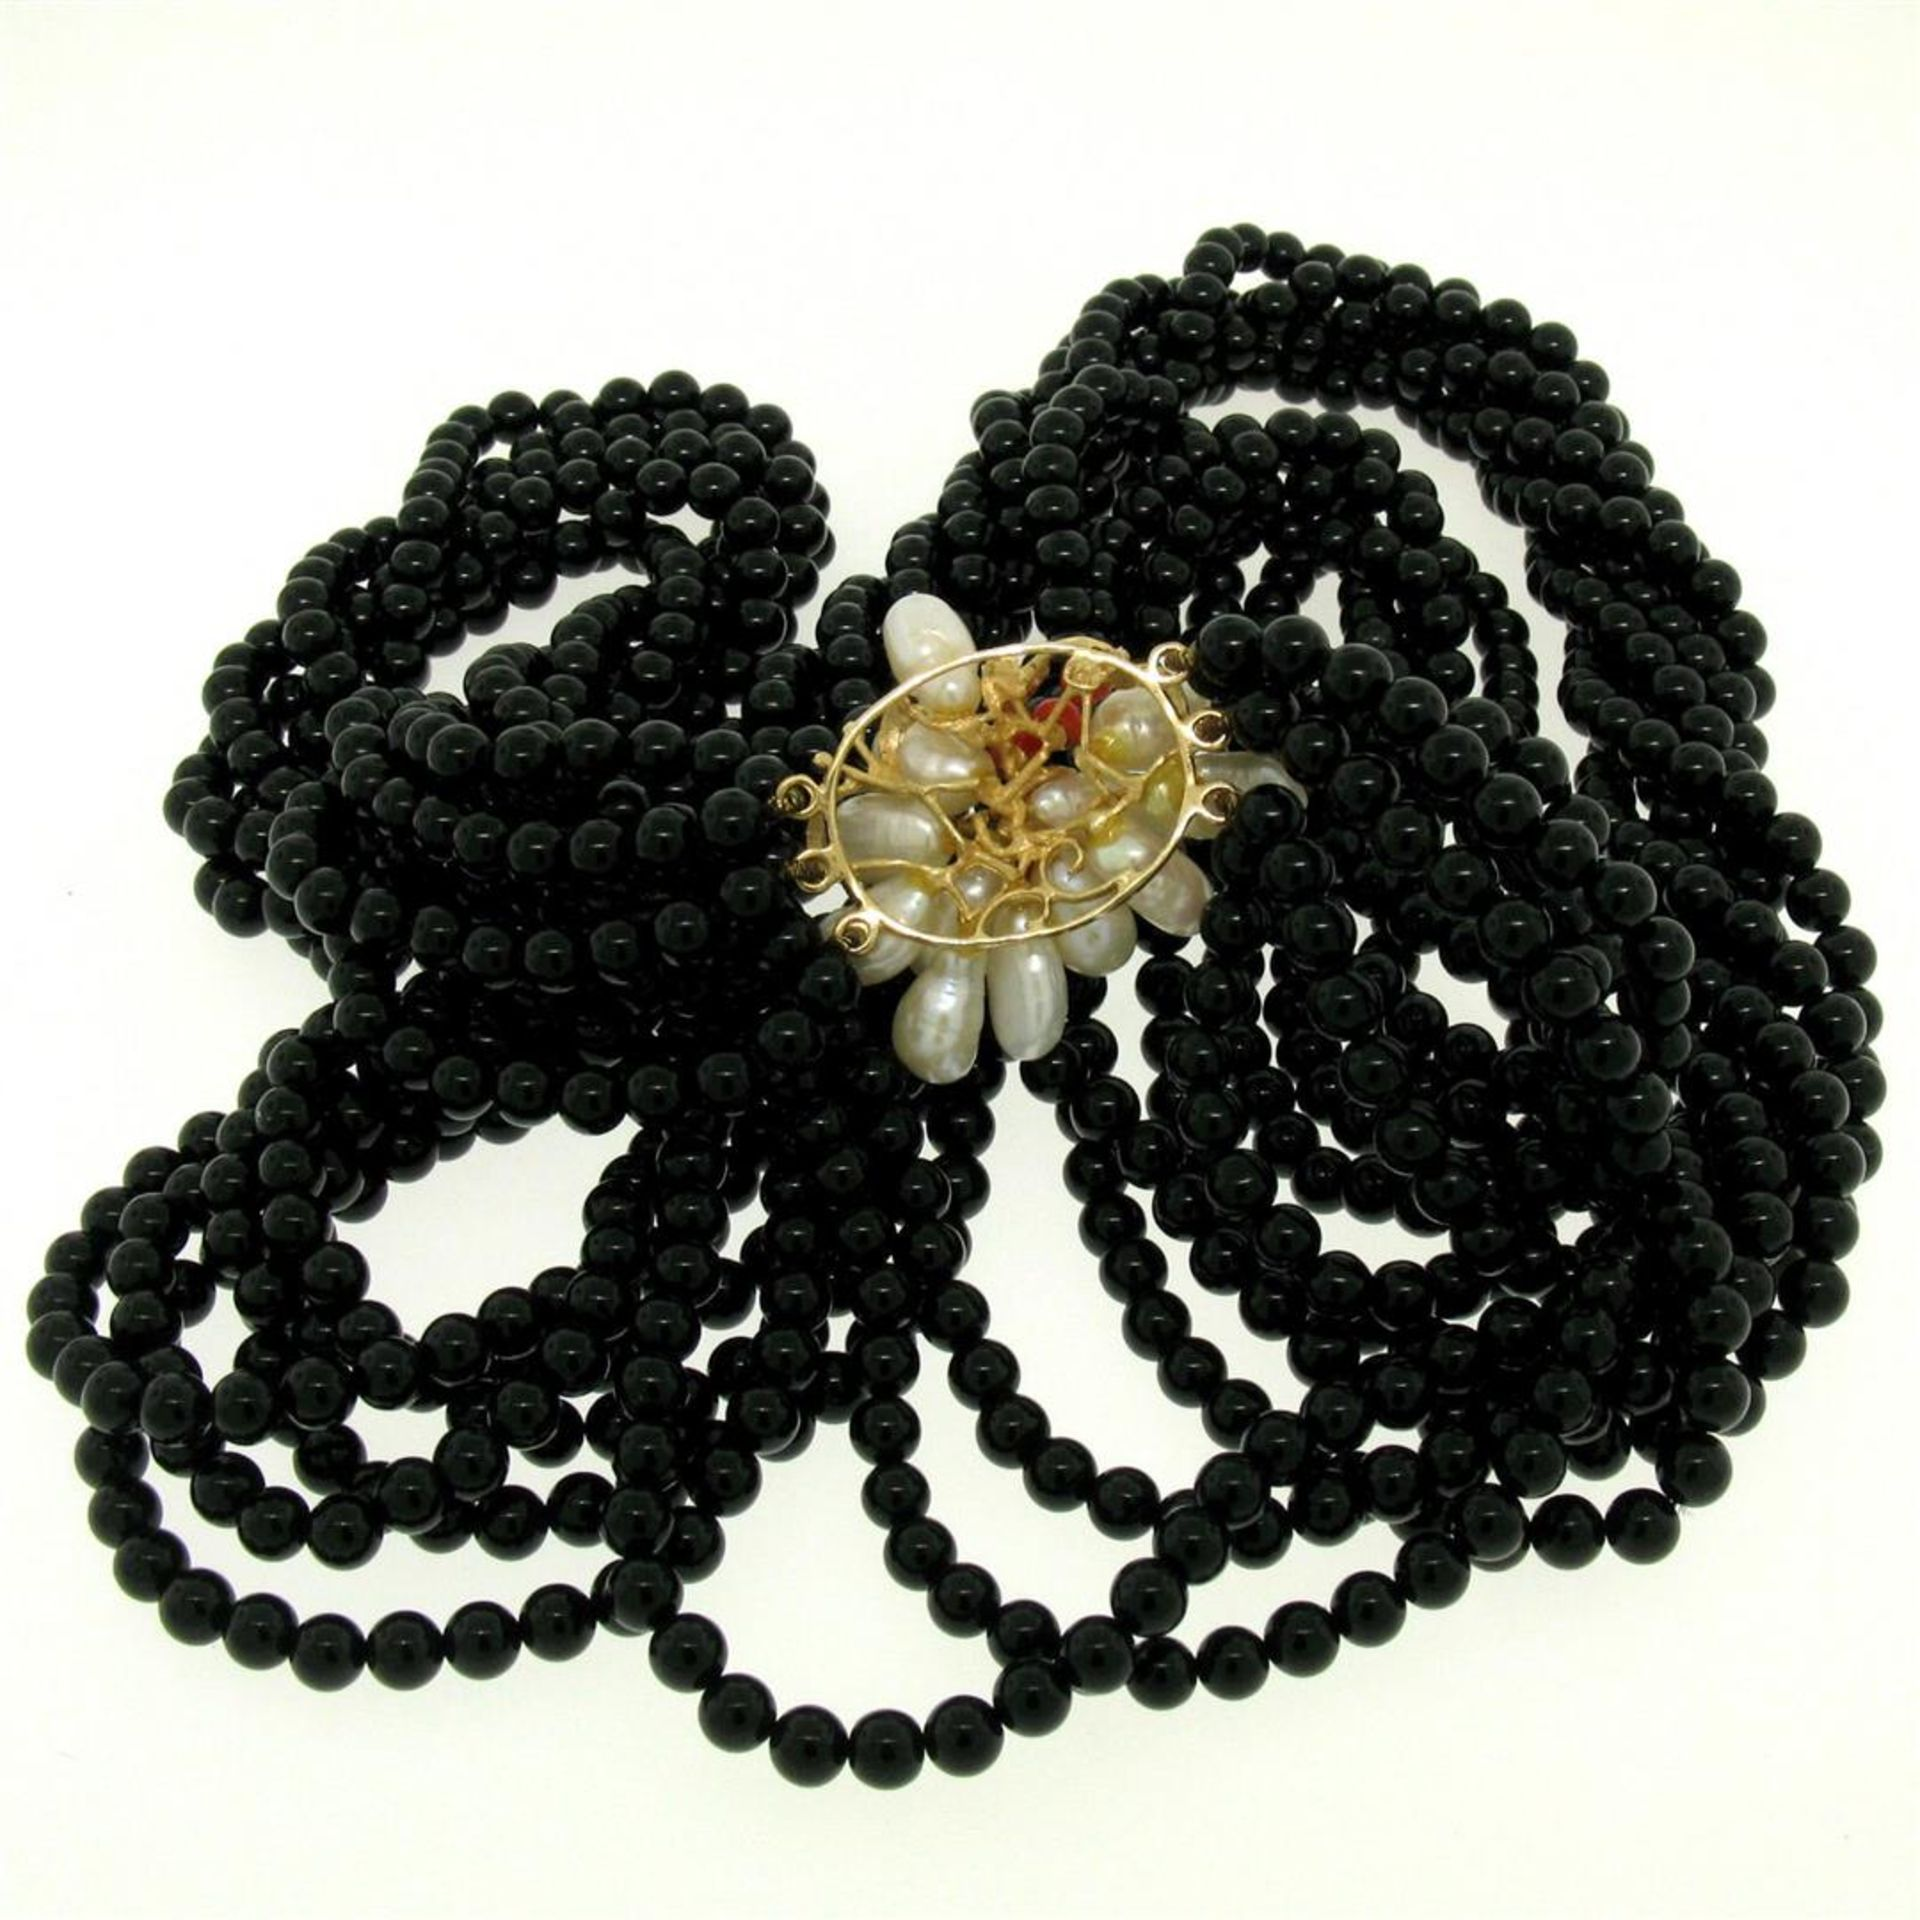 14k Gold Long Multi Strand Black Onyx Necklace w/ Freshwater Pearl & Coral Bead - Image 4 of 4